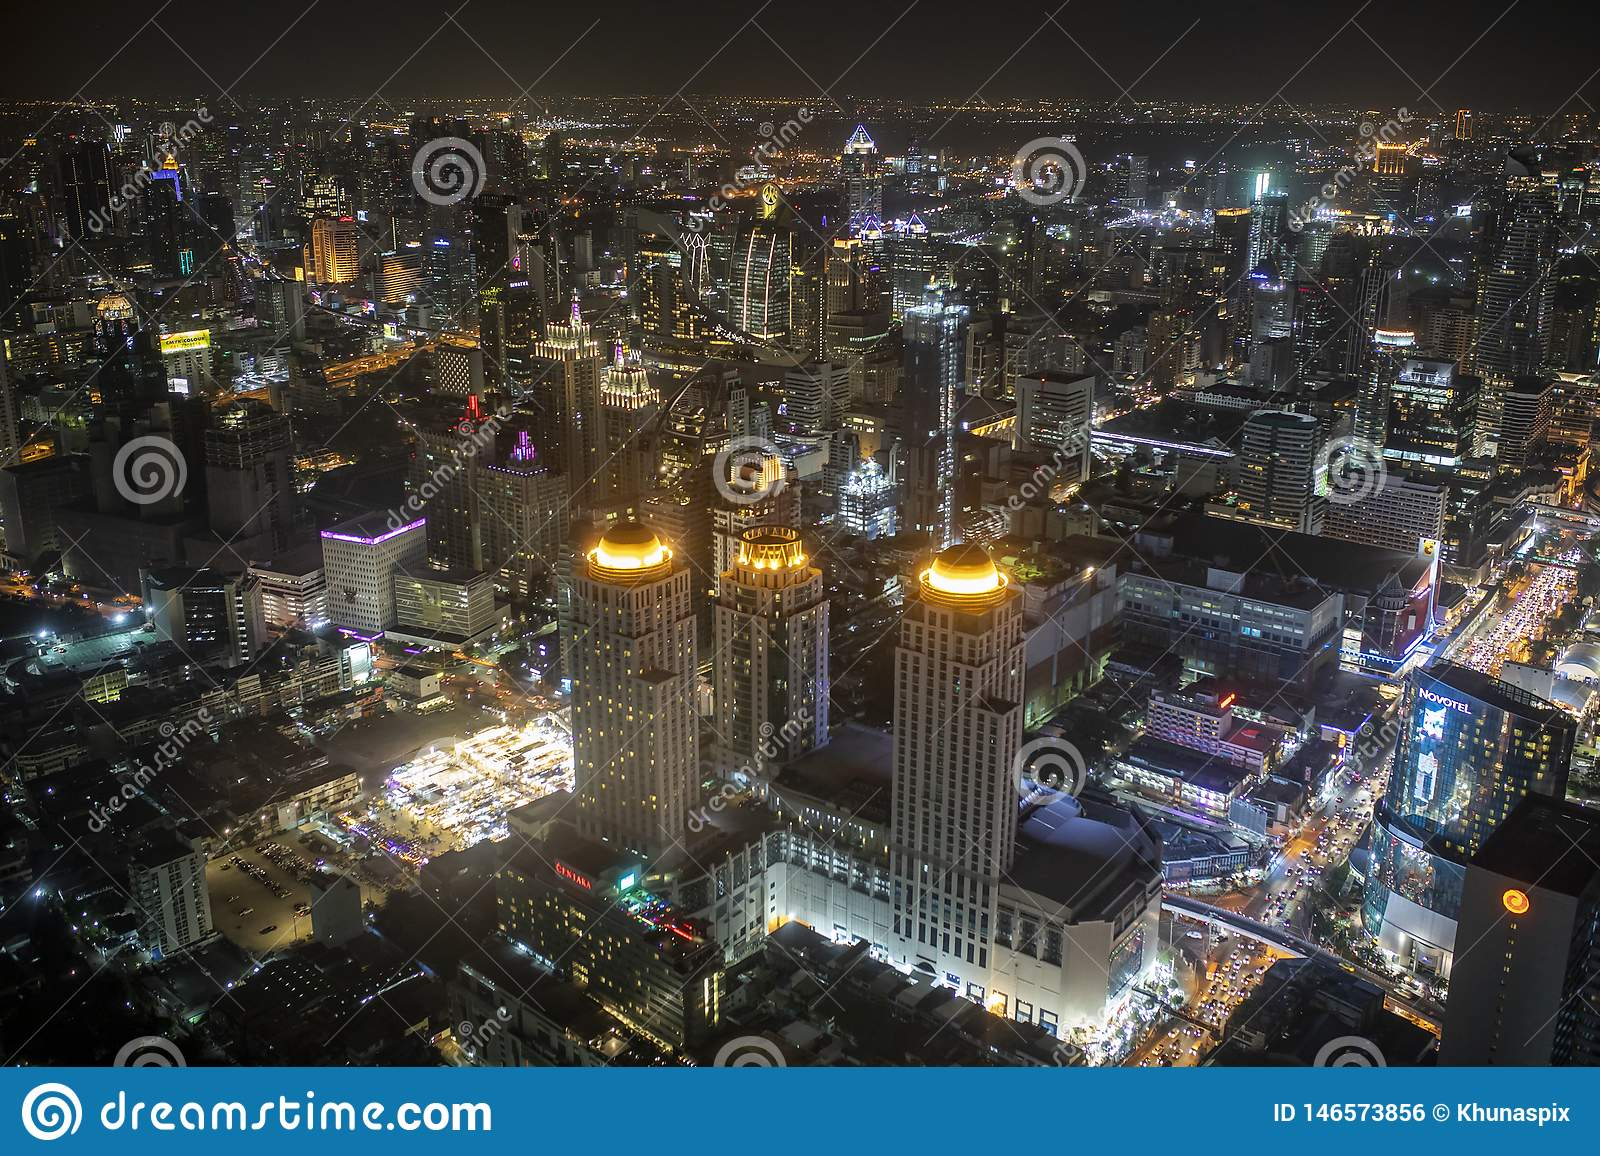 Bangkok thailand - august21,22018 : high angle view of urban skyline in heart of bangkok view from baiyoke tower formerly highest